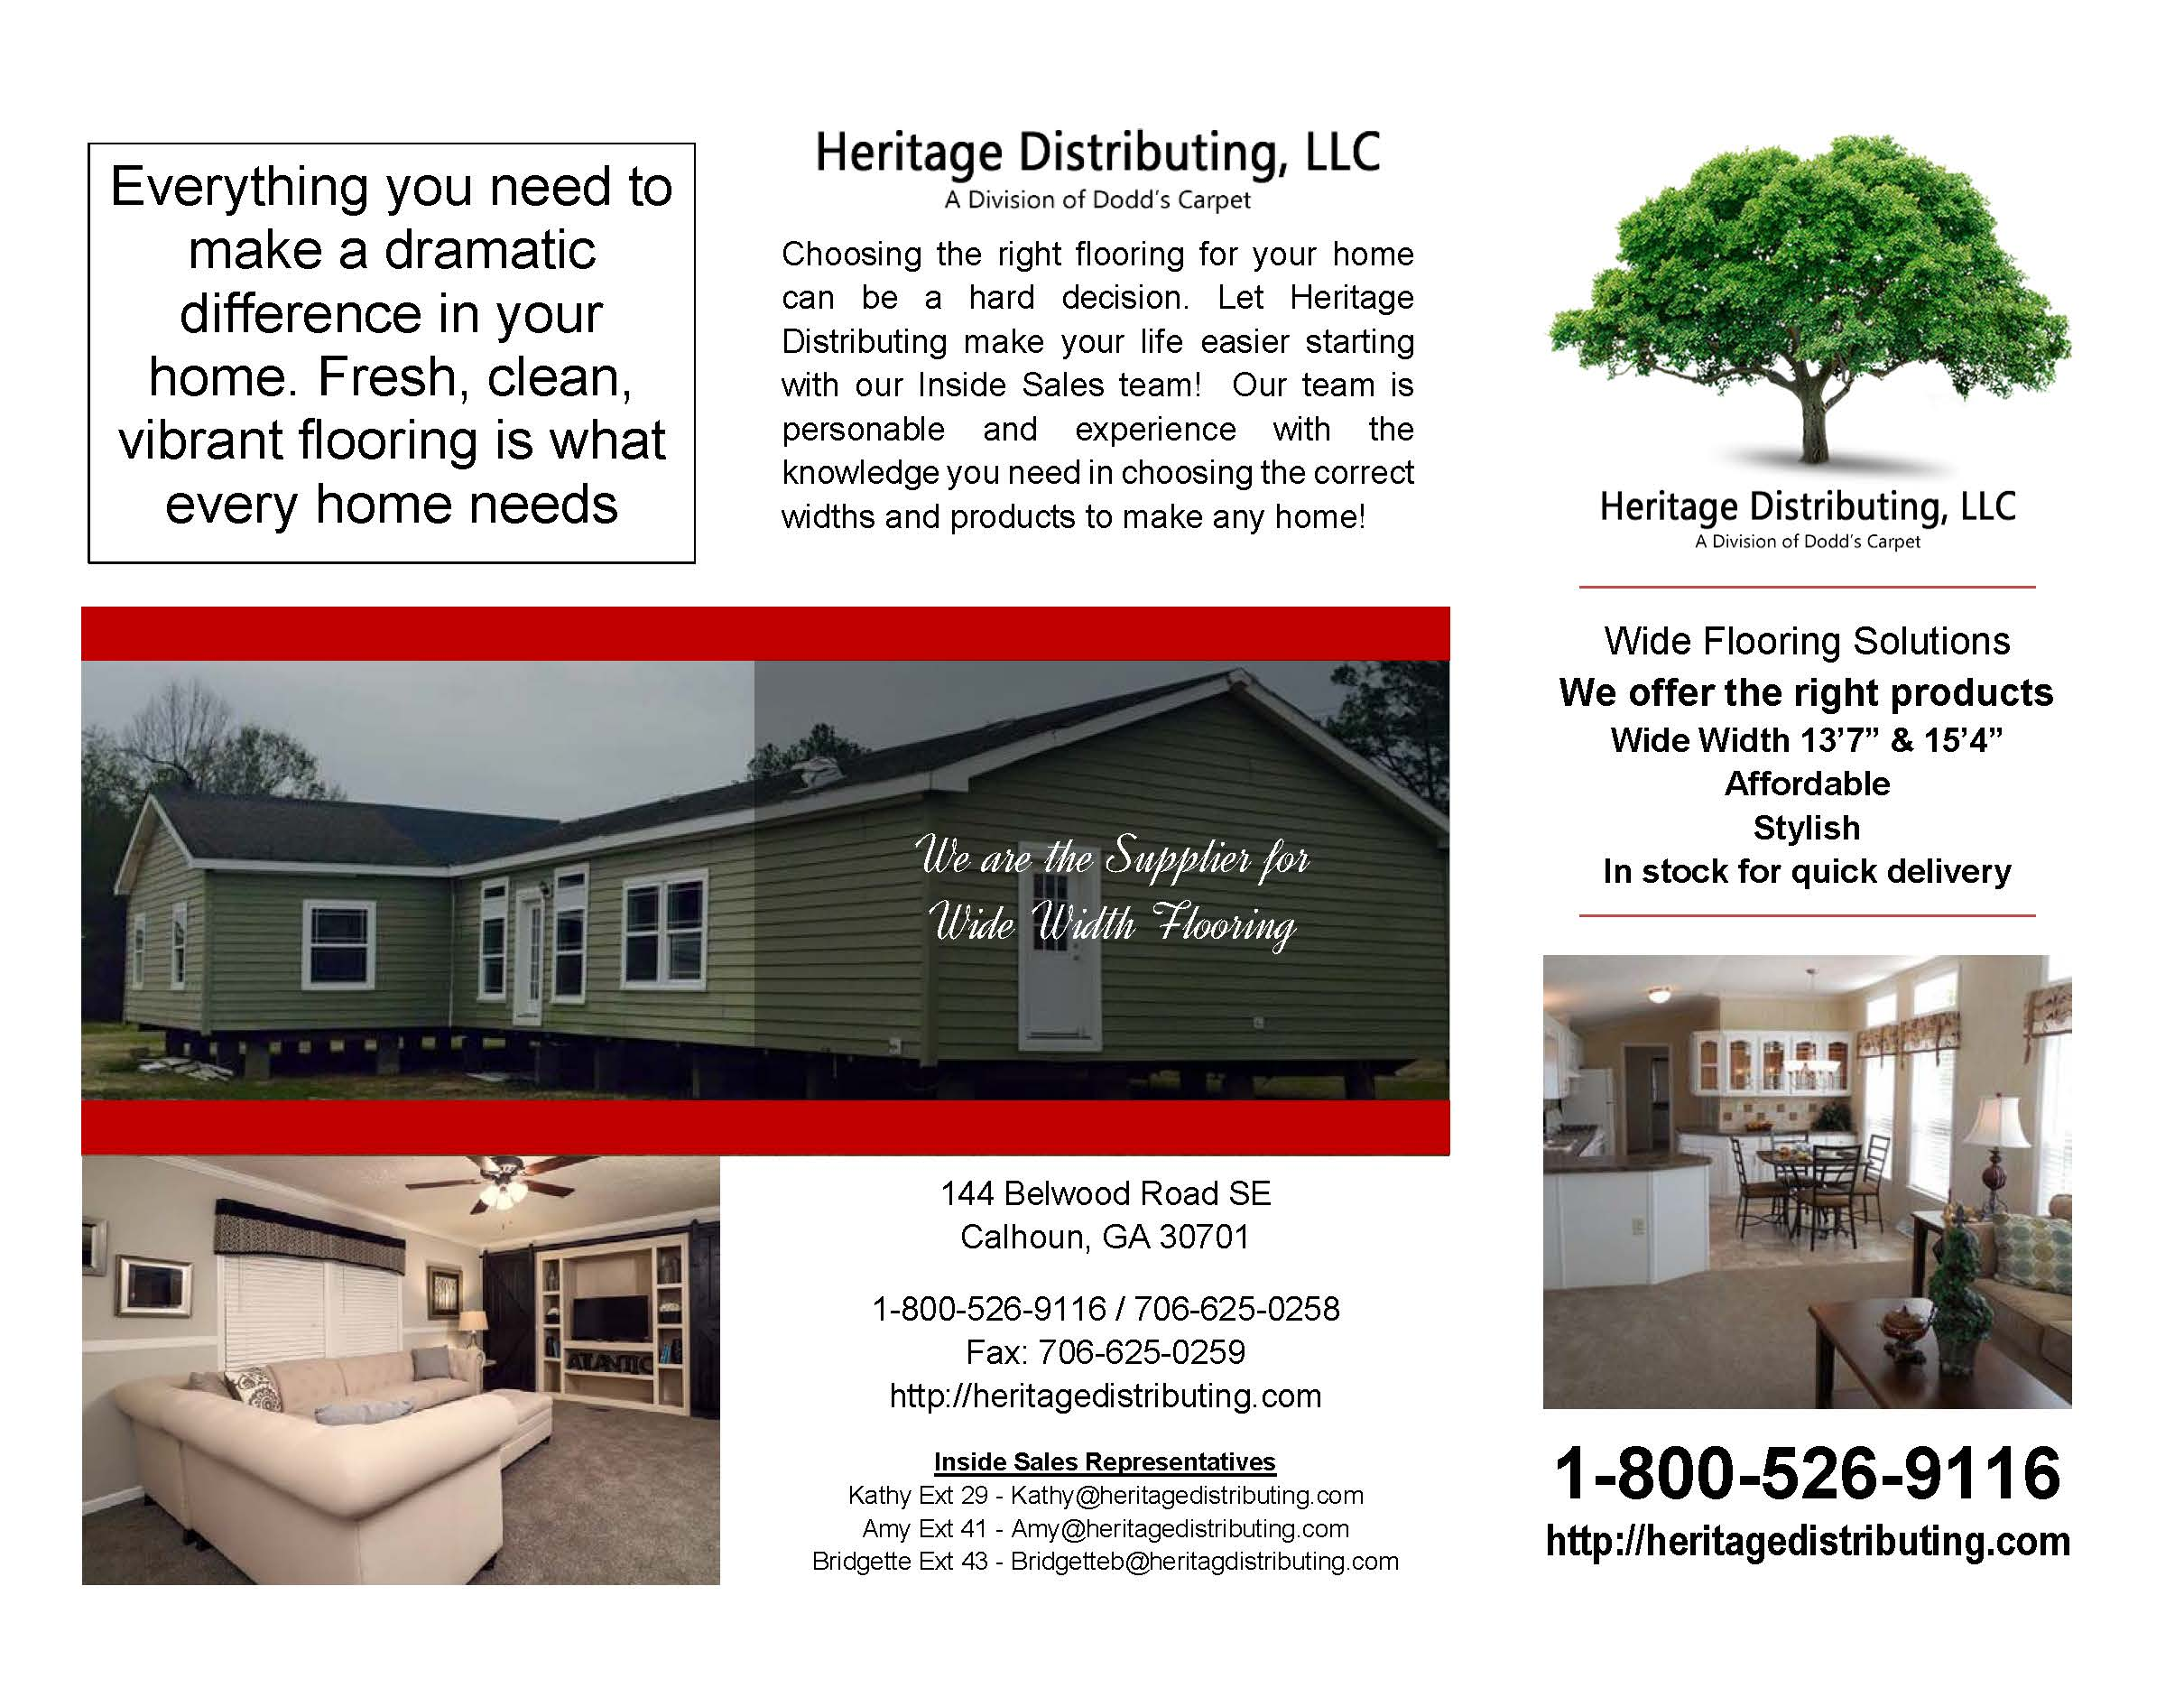 Heritage Distributing Brochure